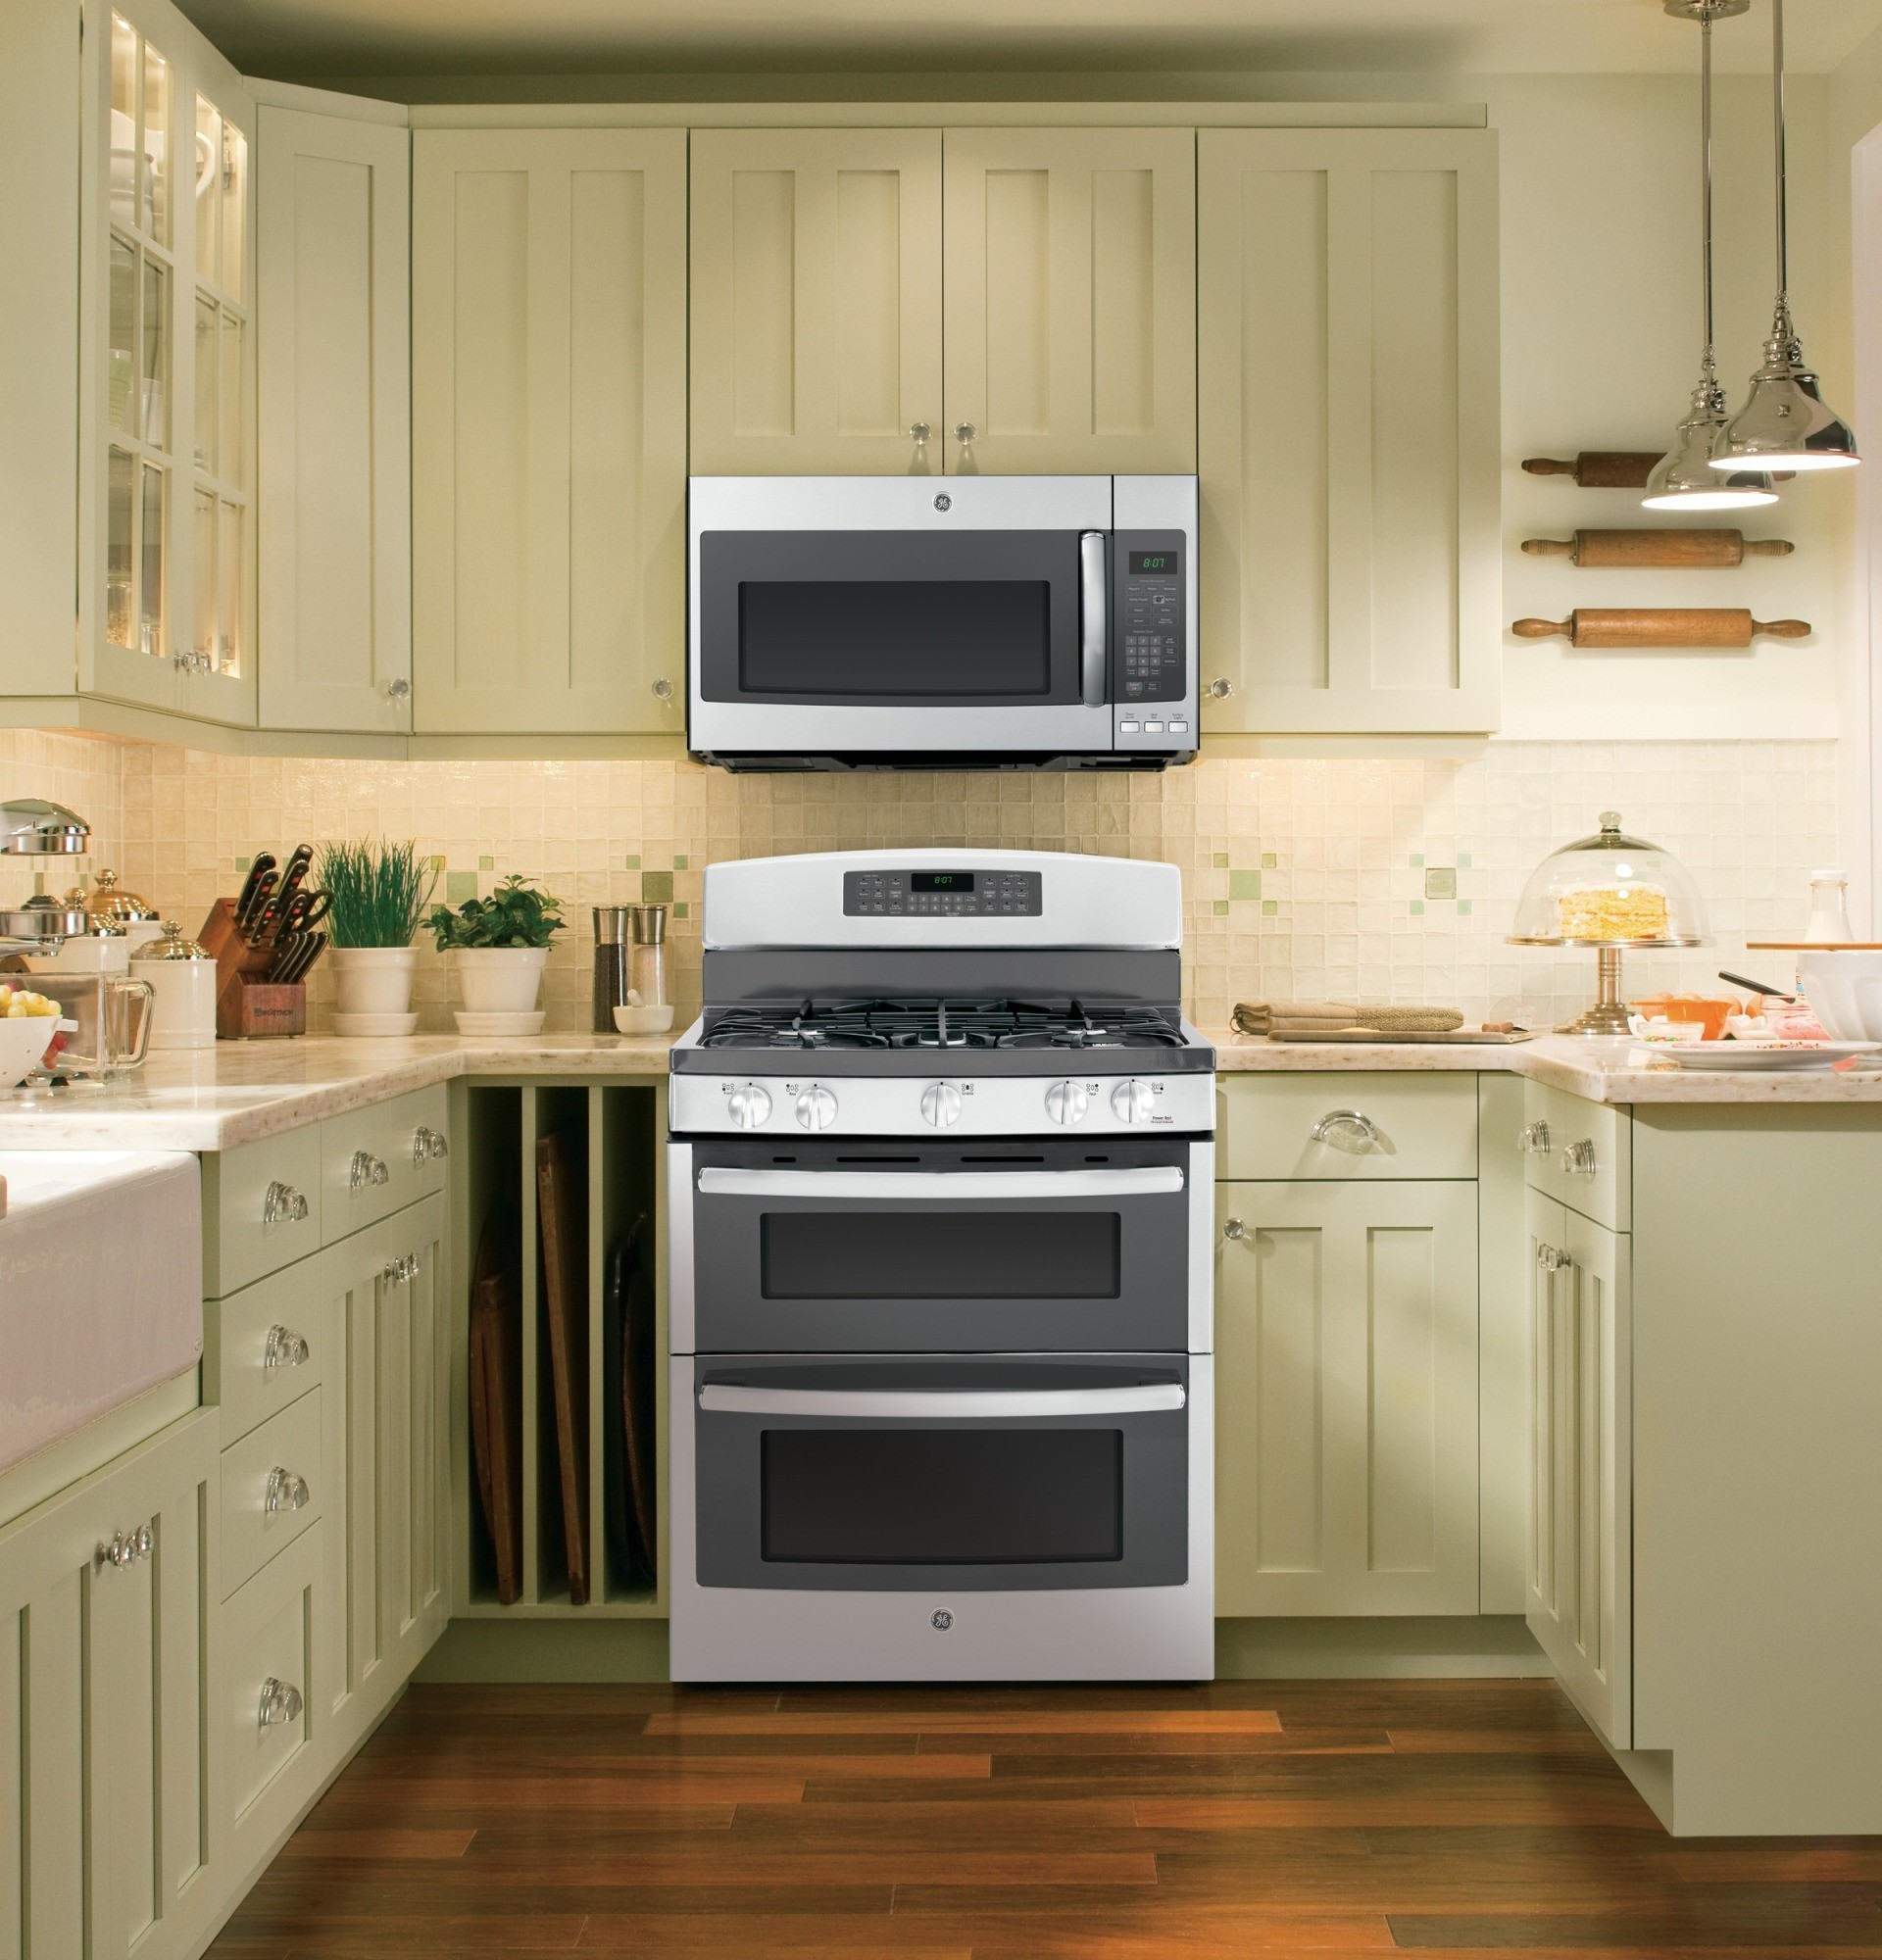 Pnm9196sfss Ge Profile Series 1 9 Cu Ft Over The Range